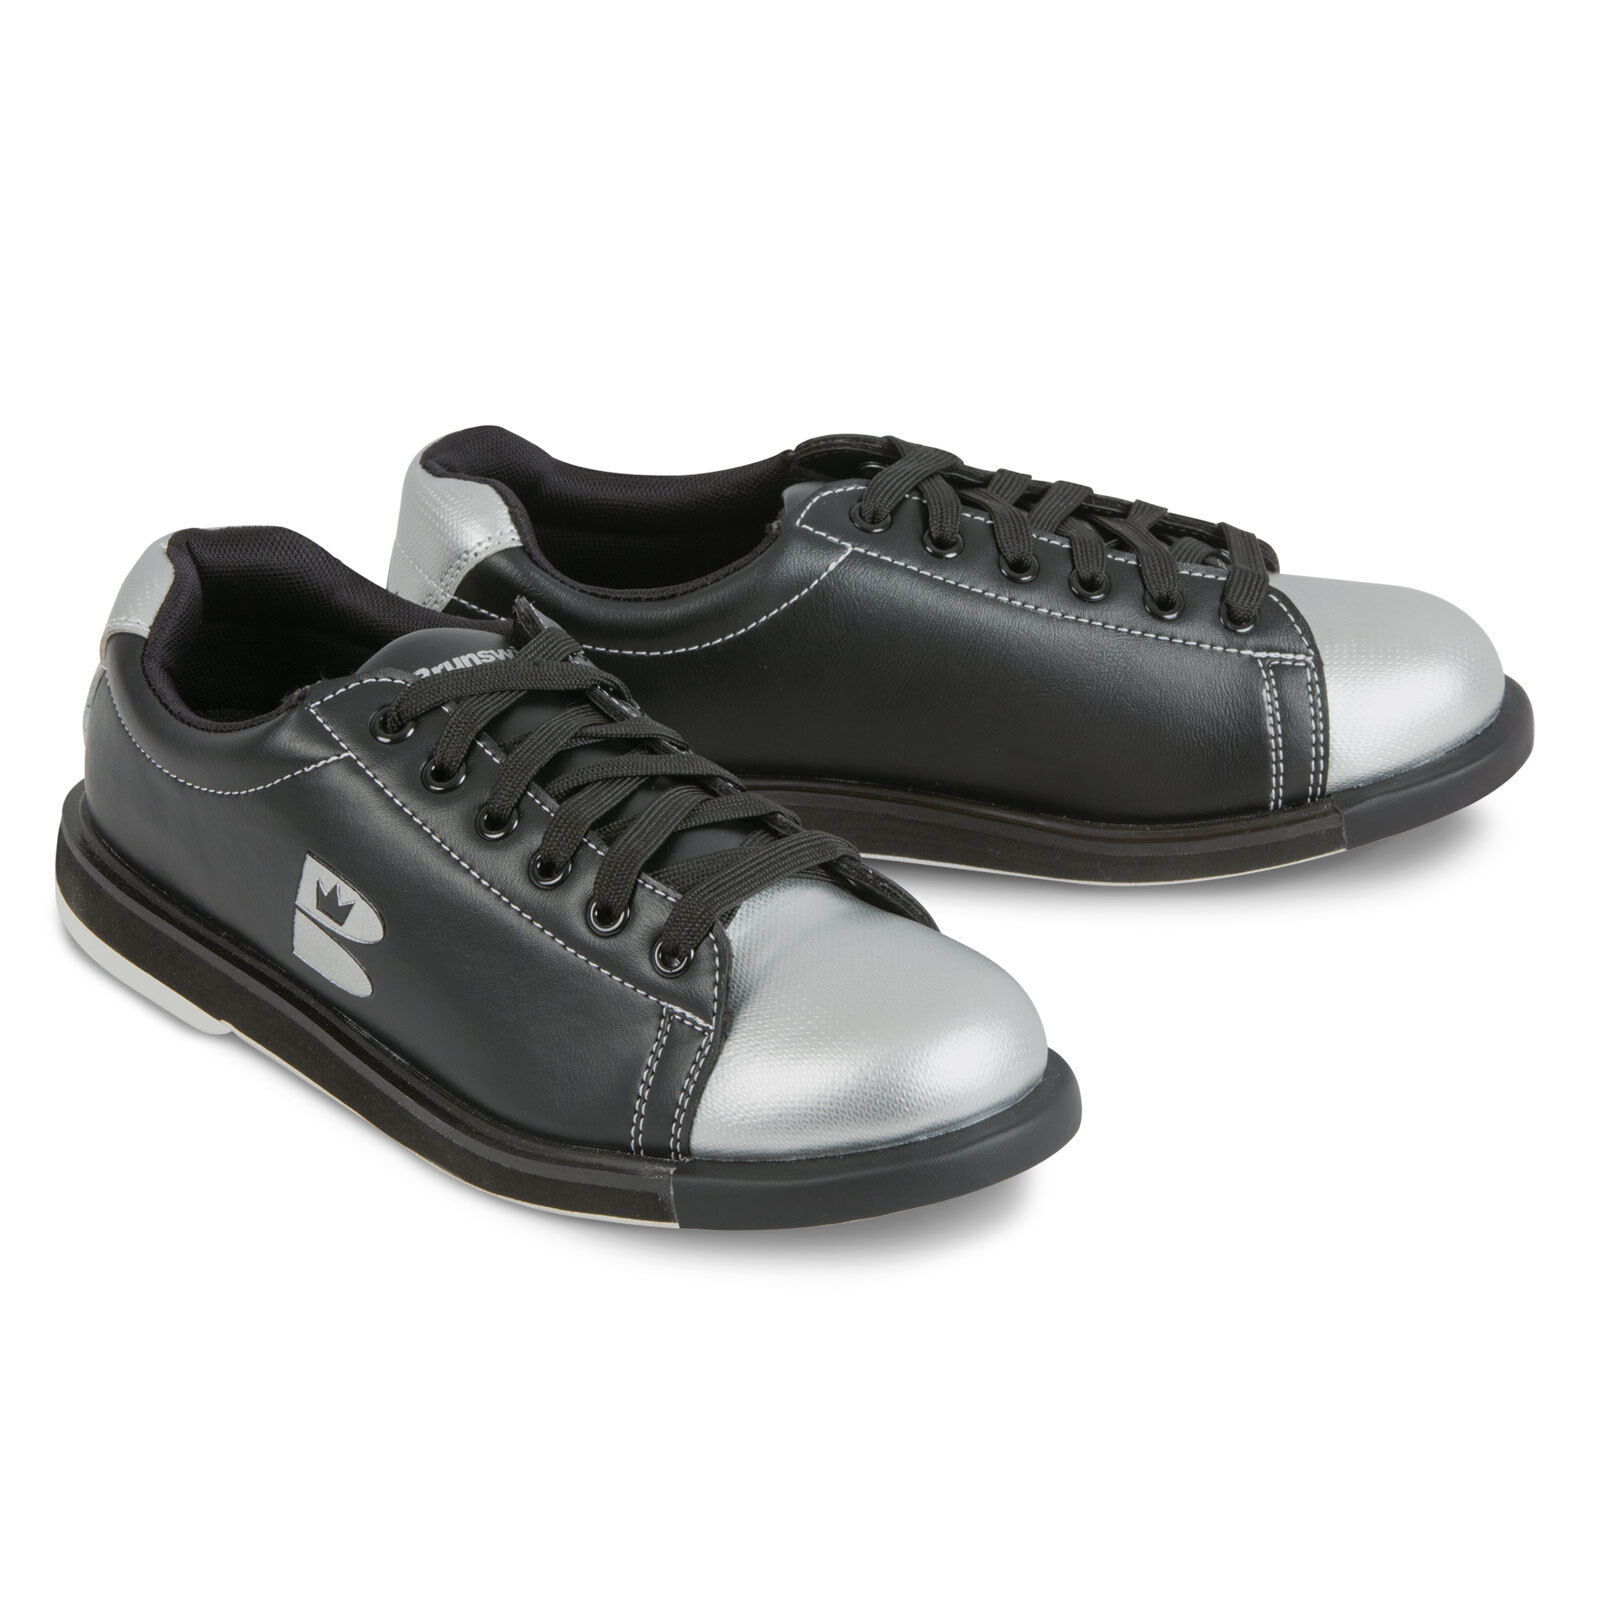 Купить Brunswick TZone Men s Bowling Shoes Black Silver на eBay.com ... cf577ab1435